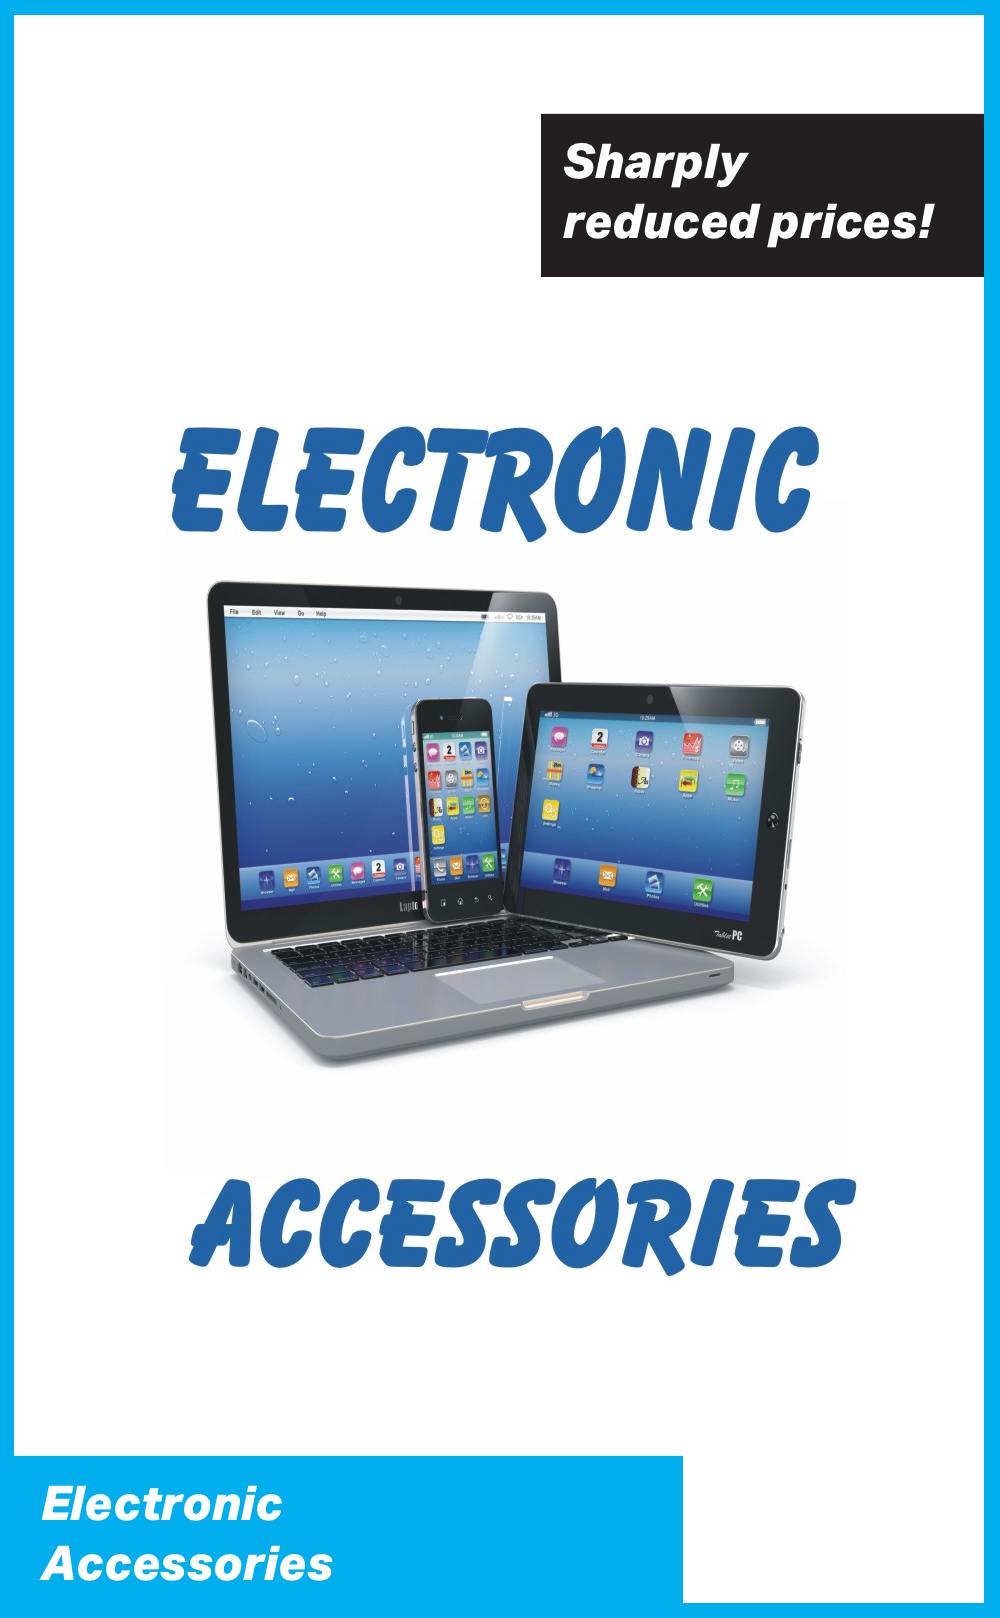 Electronic Accessories at Sharply Reduced Prices!